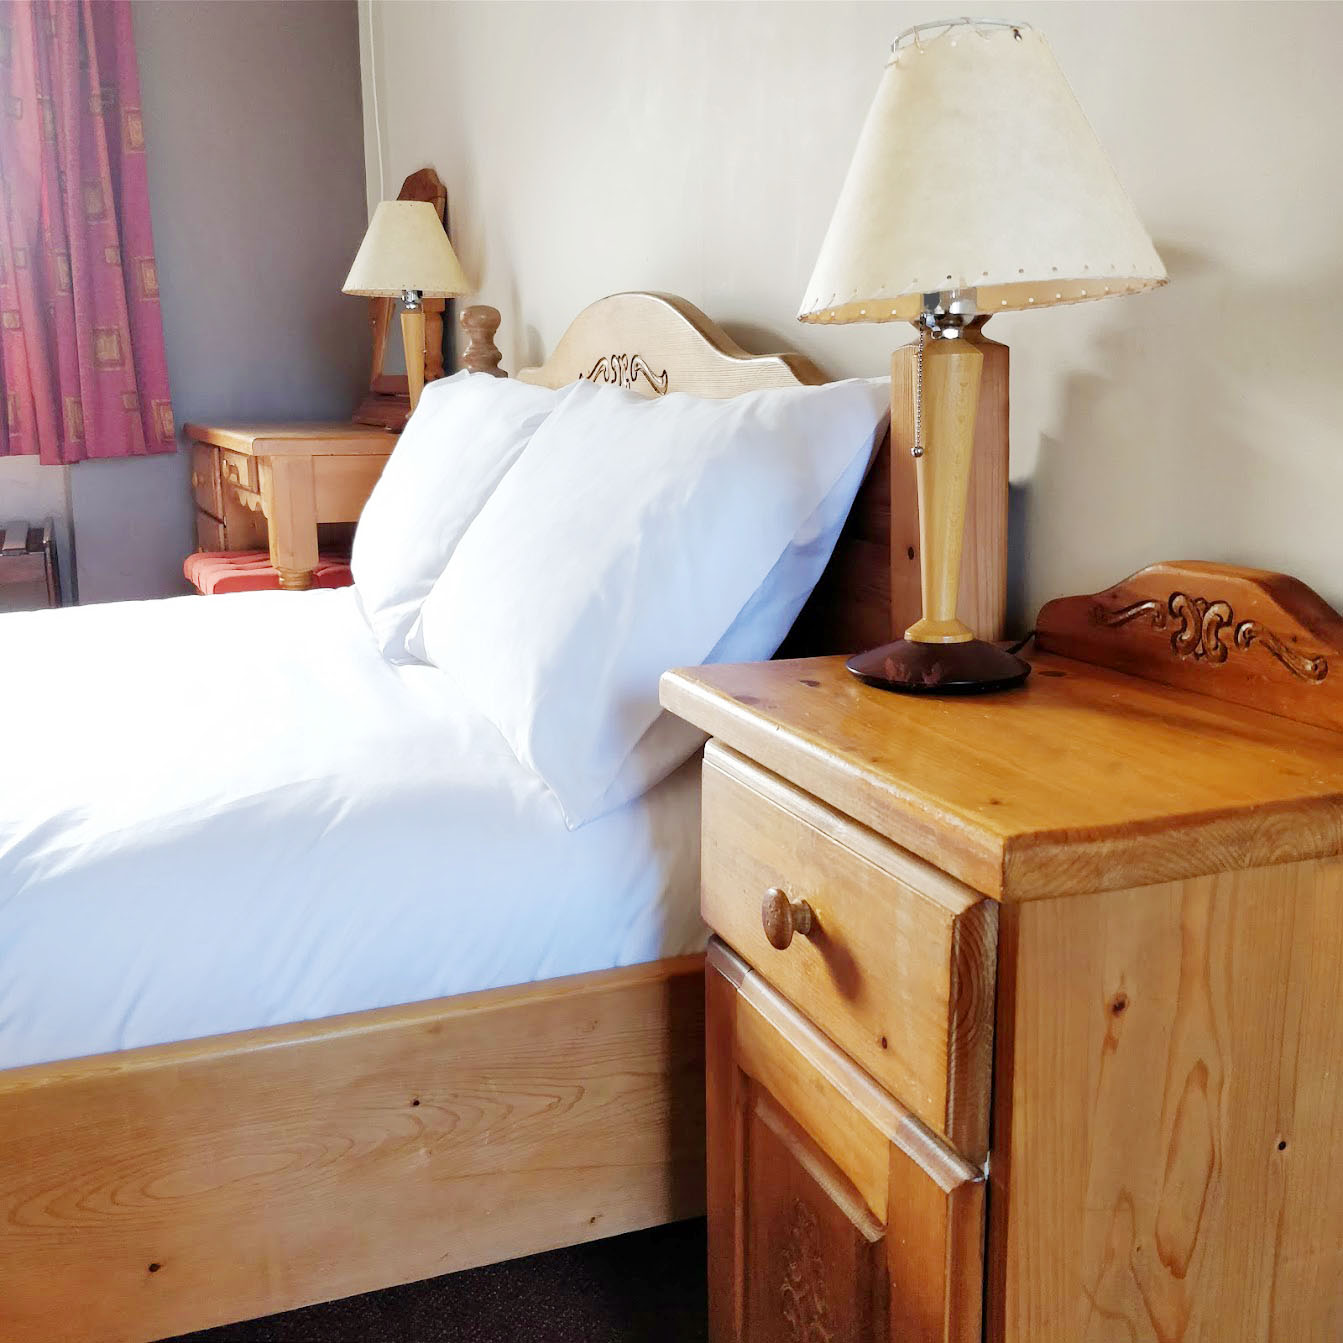 one of our Doubles guest bedrooms in Aras